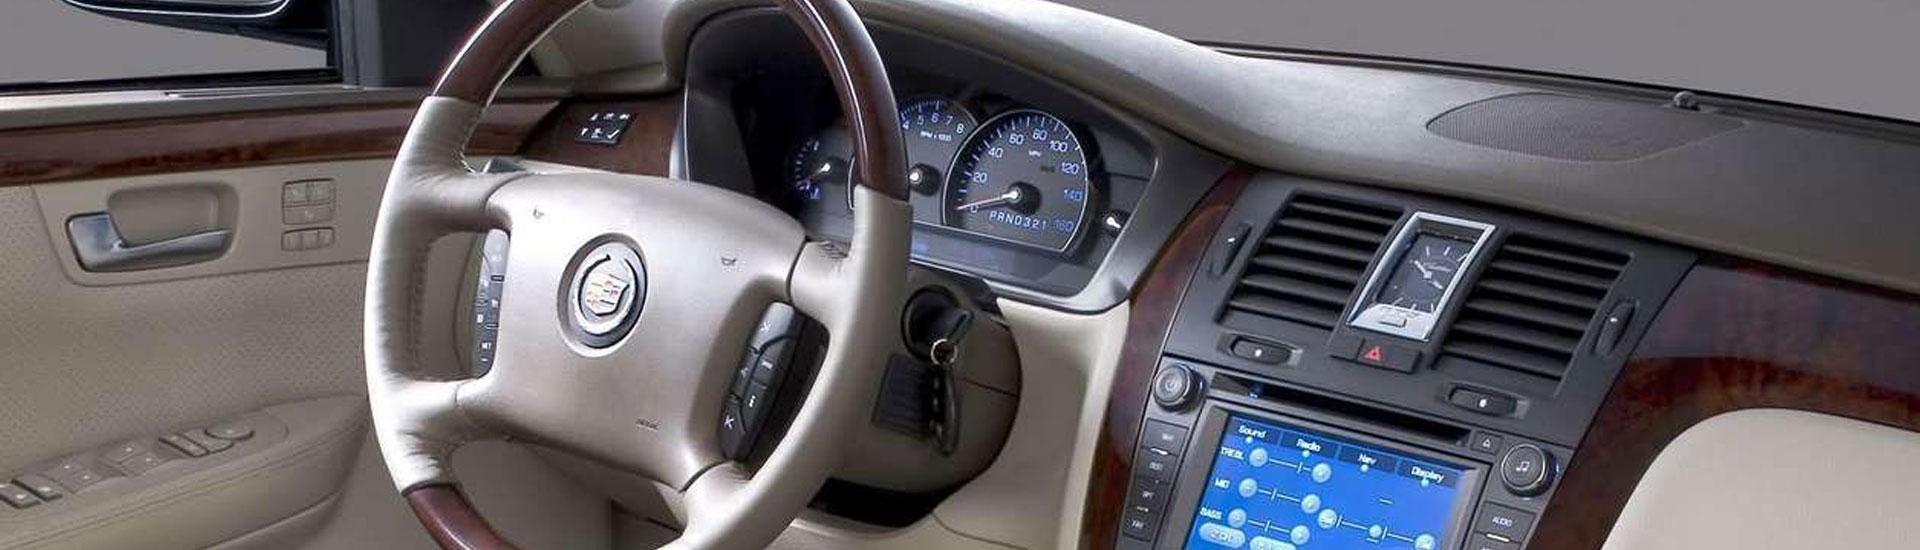 Cadillac Dts Dash Kits Custom Cadillac Dts Dash Kit